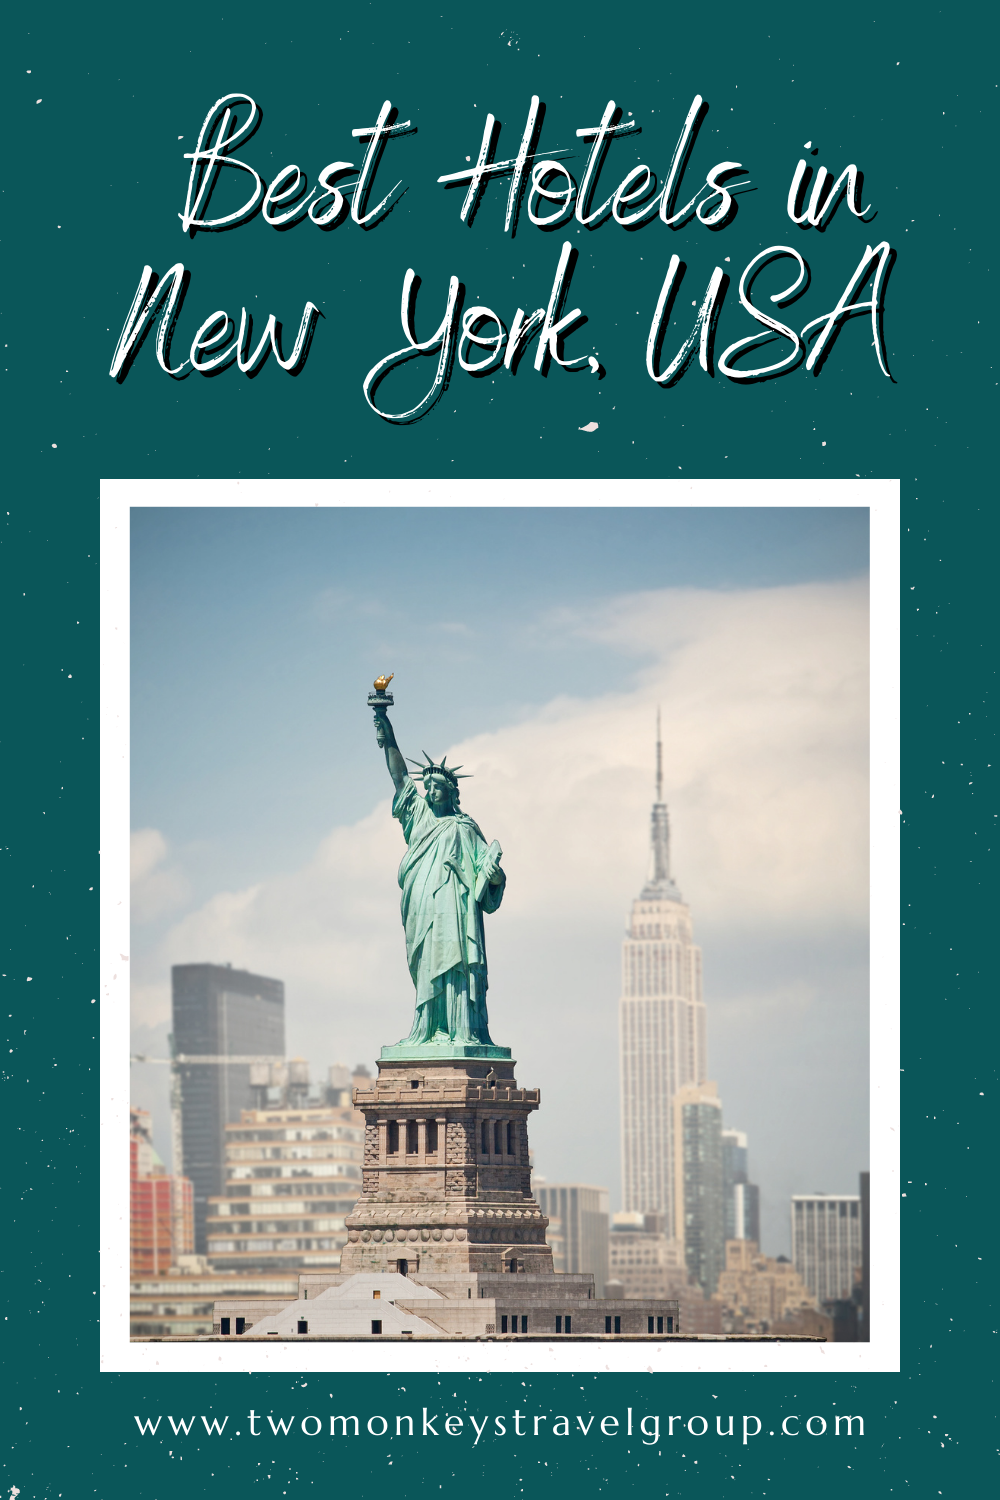 Complete List of Recommended Best Hotels in New York, USA